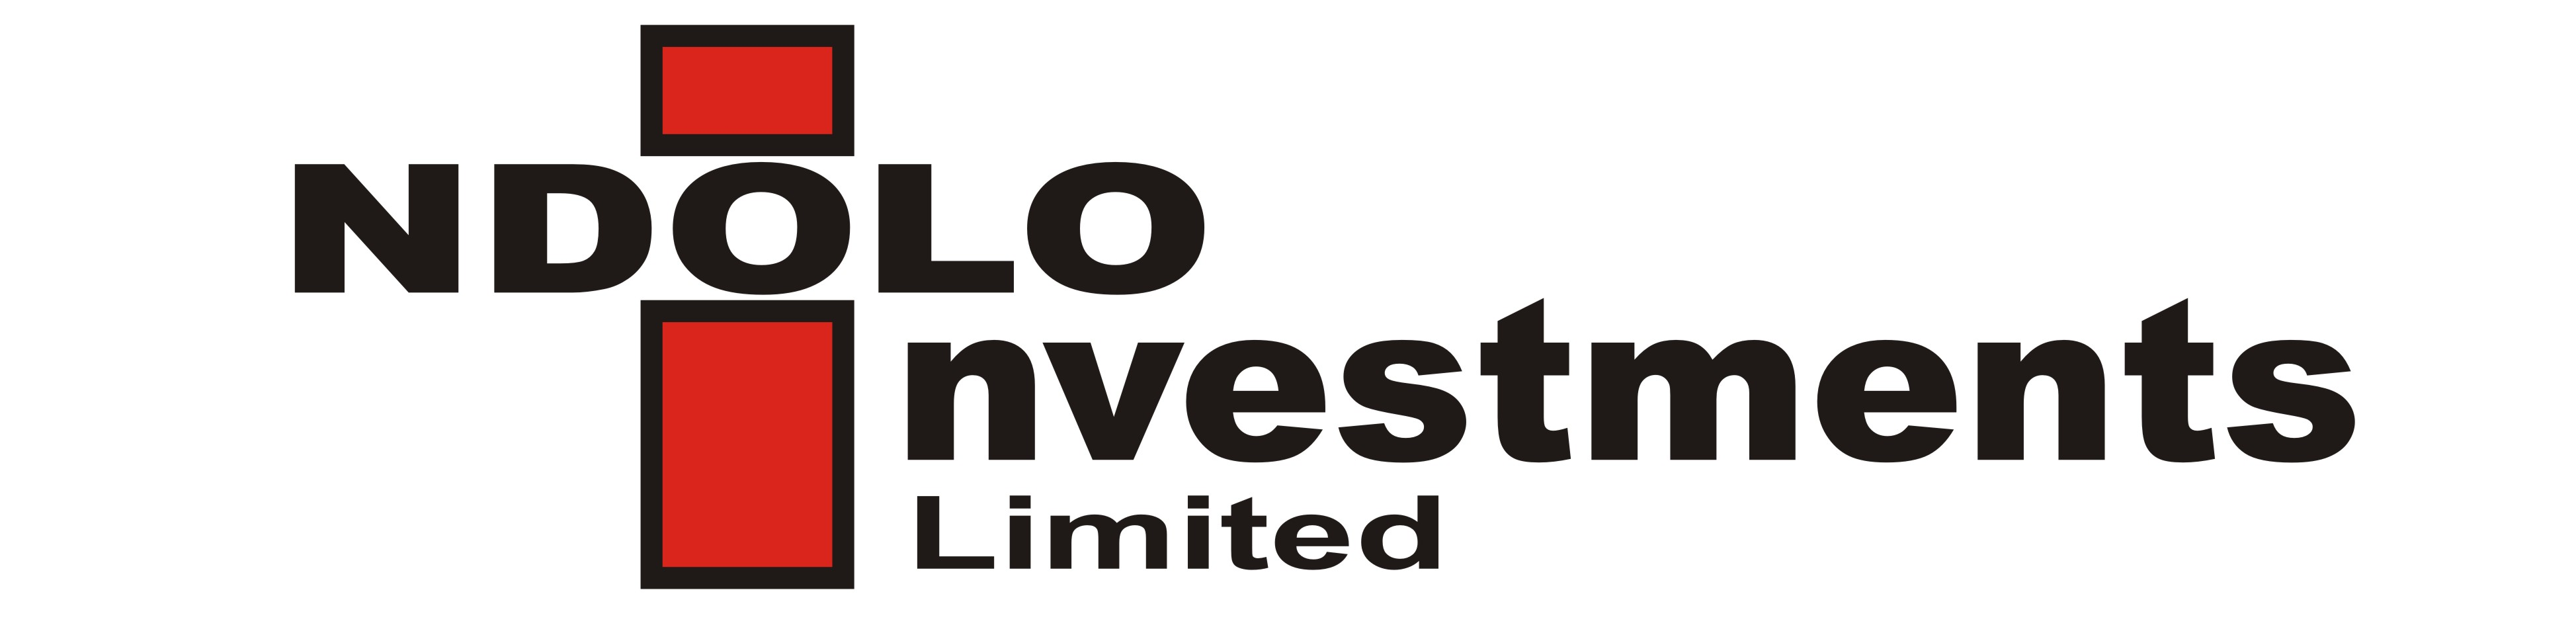 NDOLO INVESTMENTS